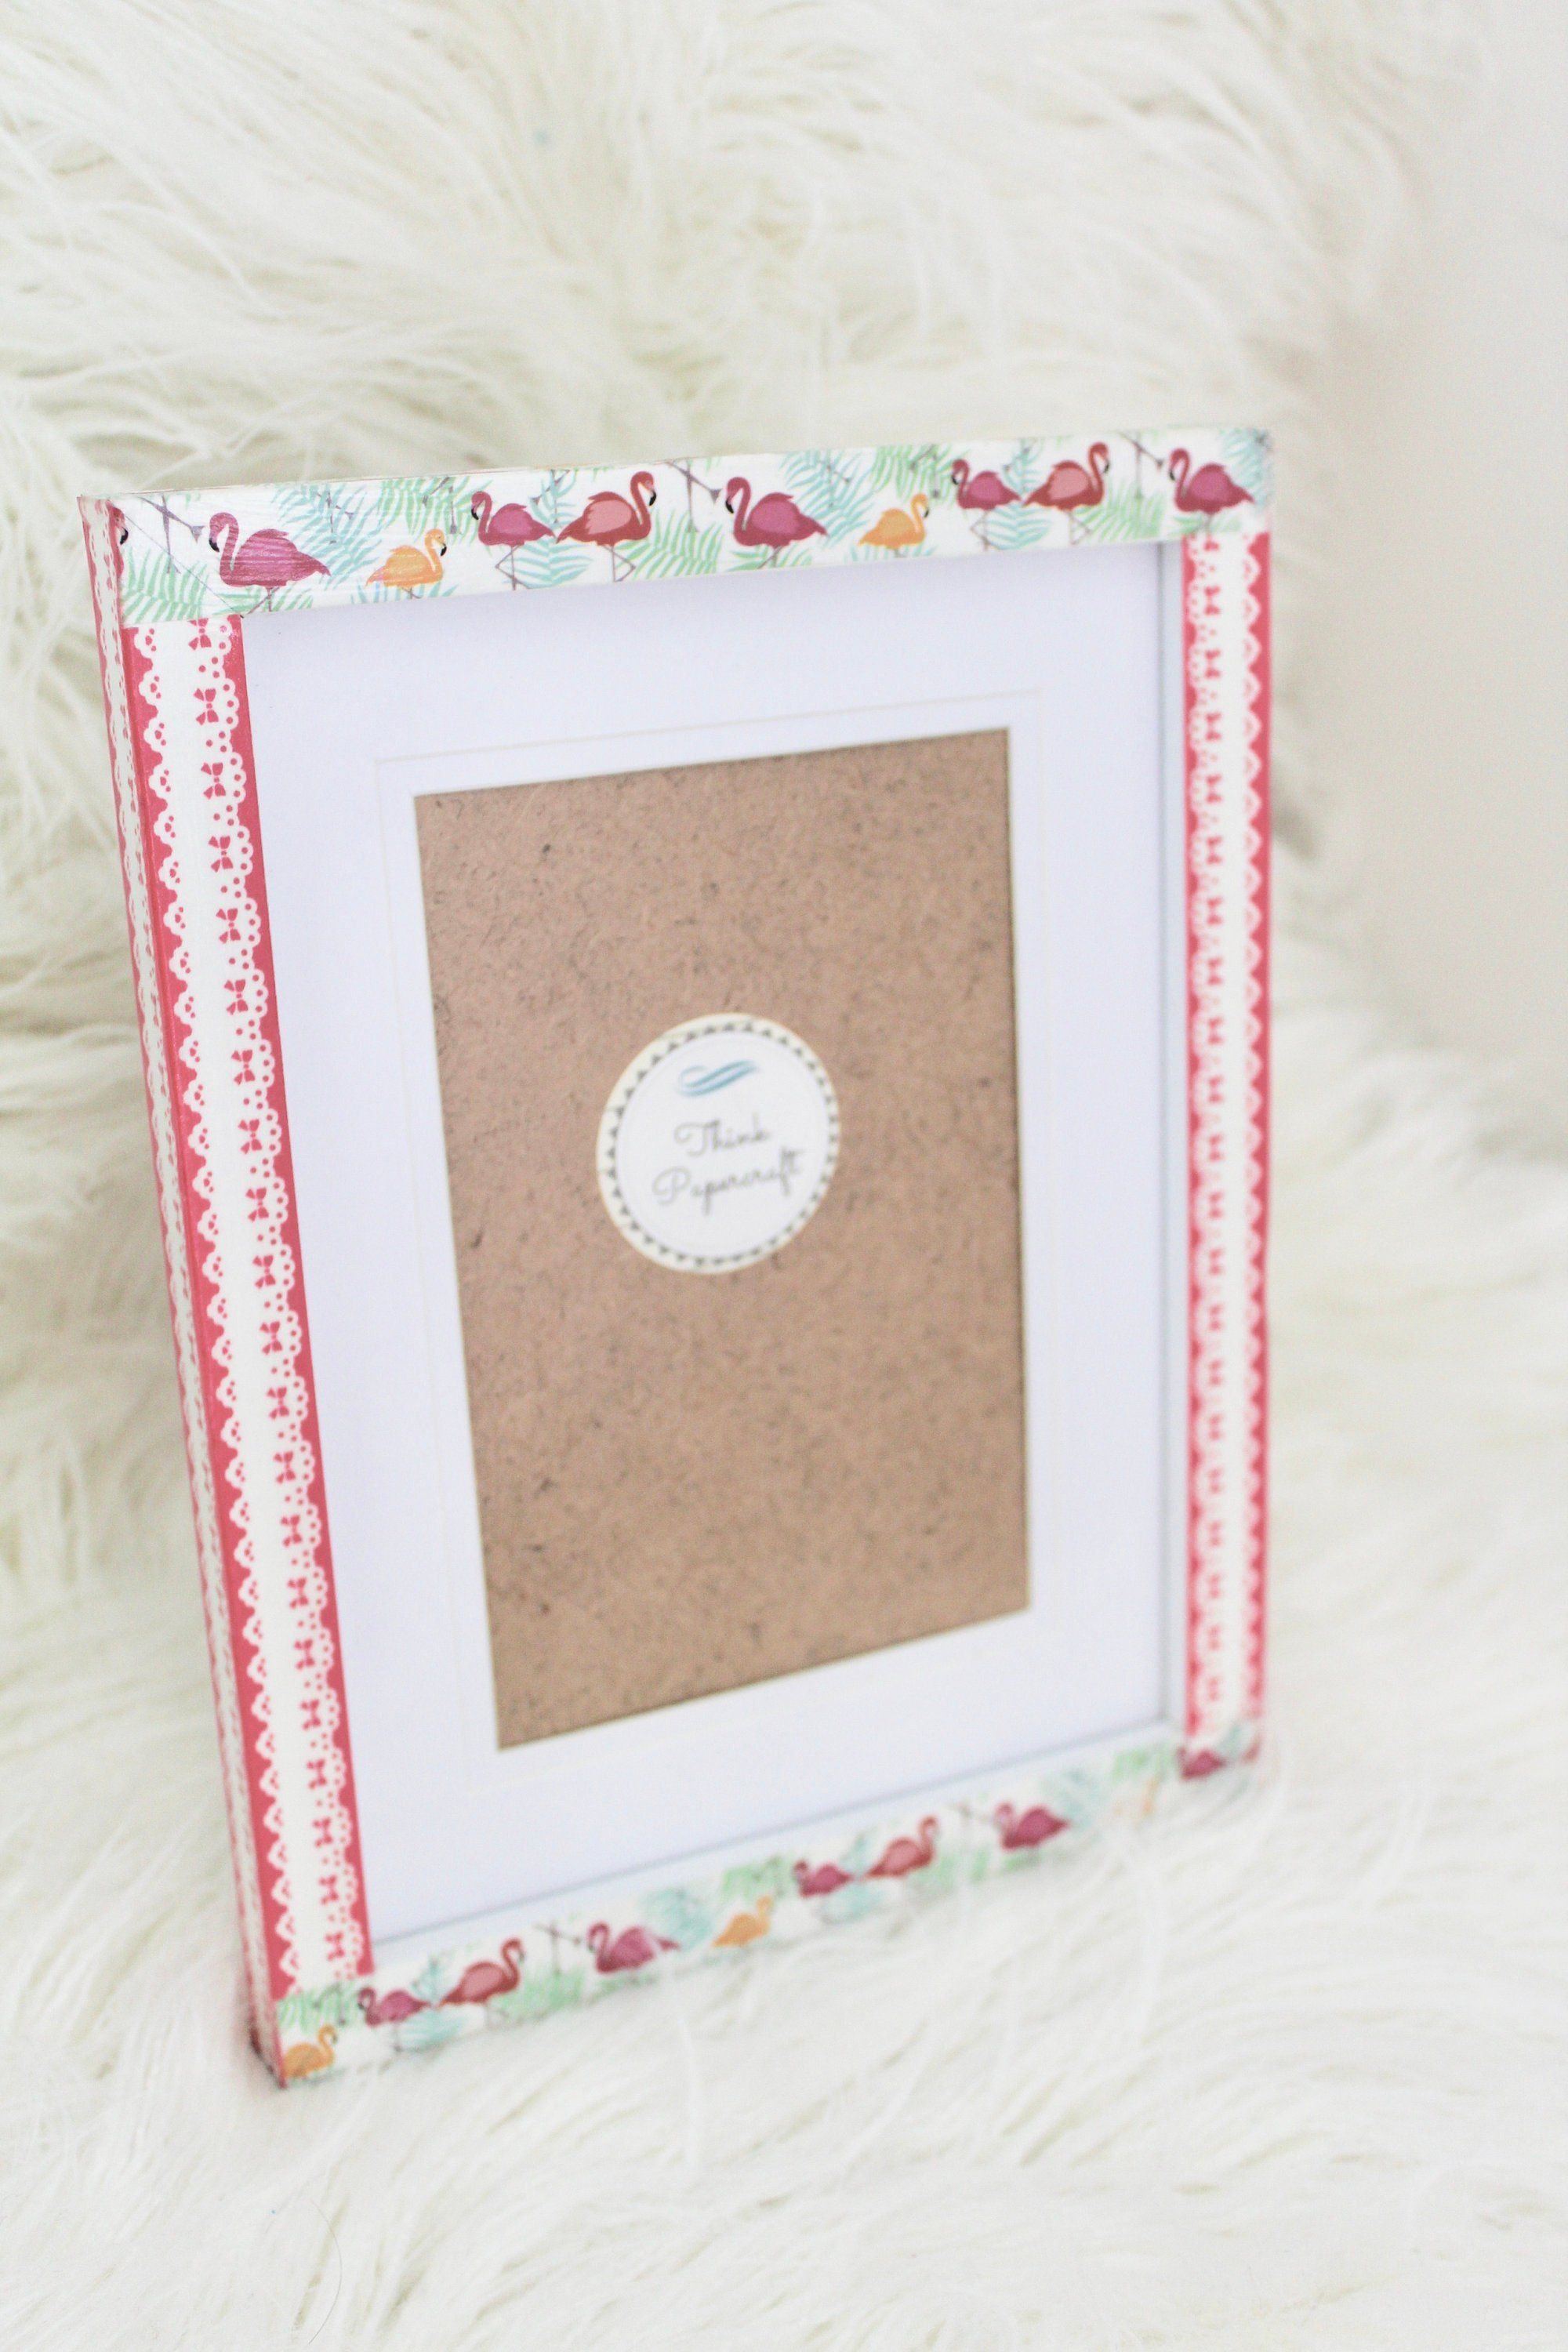 Pink Flamingo Decorated Photo Picture Frame 4x6 Inches 10x15 Cms Mount Or Frame 6x8 Inches 15x20 Cms With A Lace Pattern Unique Gift Photo Decor Pink Flamingos Photo Picture Frames